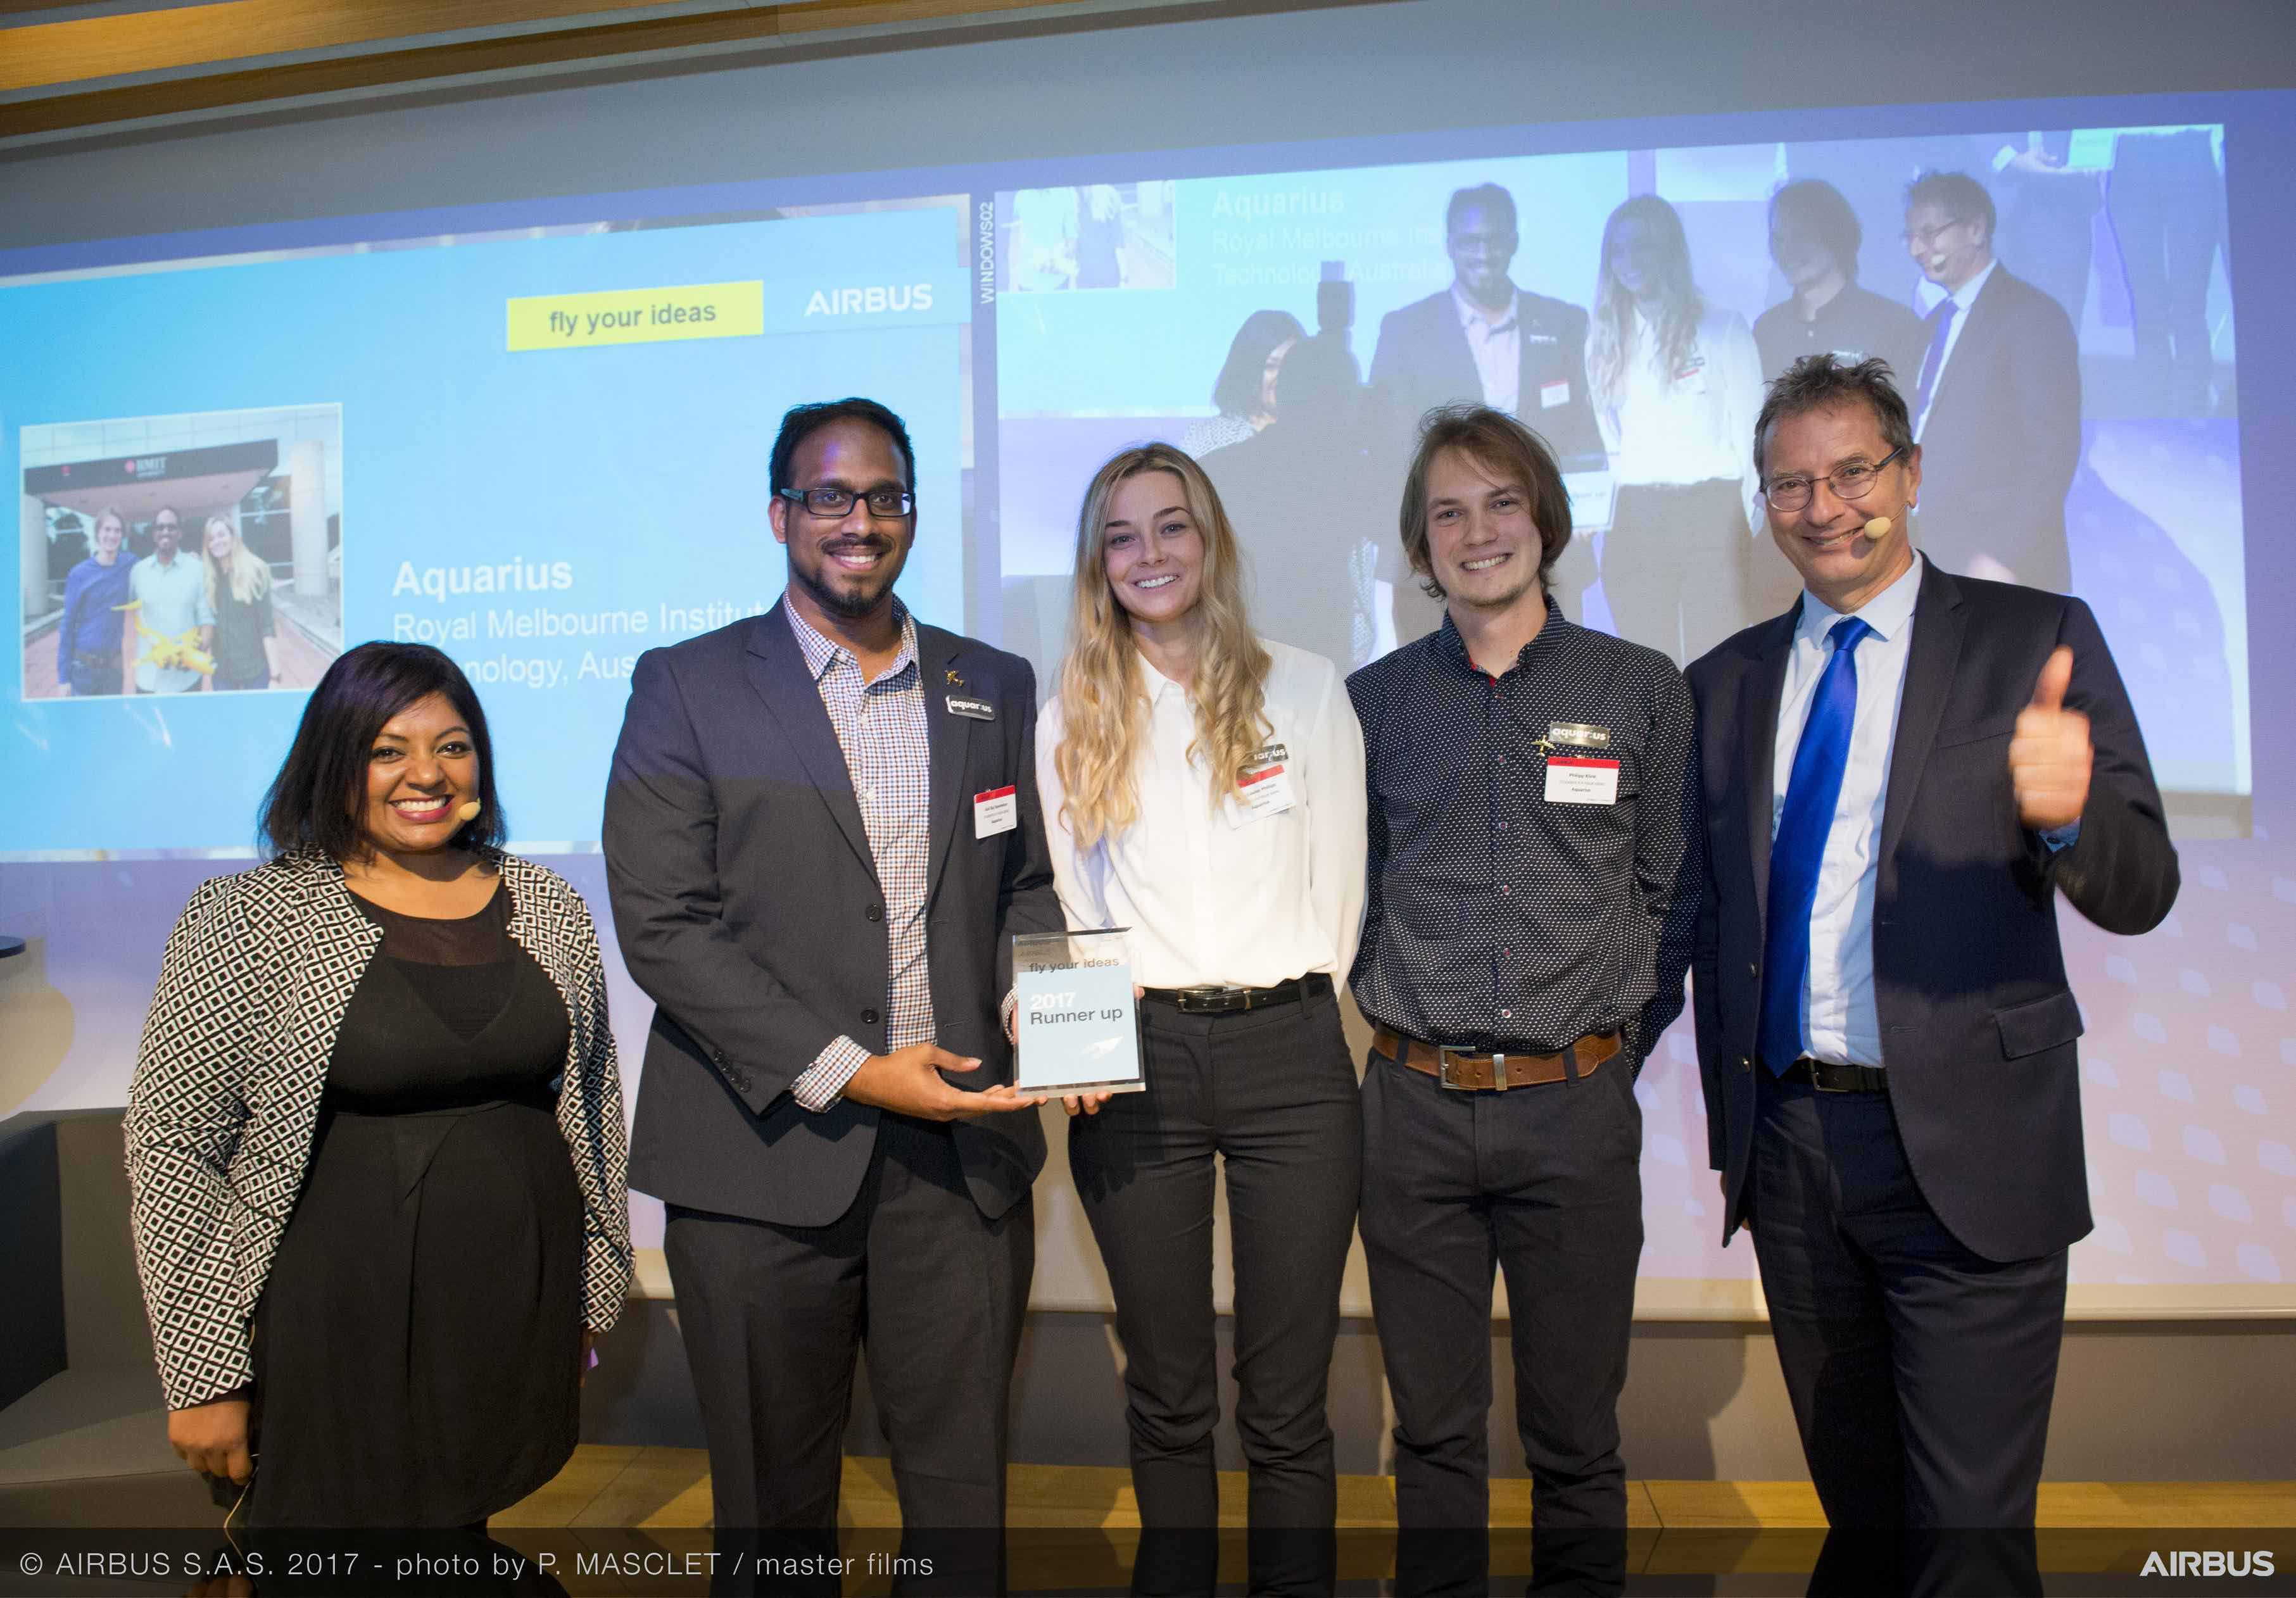 Airbus Fly Your Ideas 2017 Runners-up: Team Aquarius from Royal Melbourne Institute of Technology (RMIT), Australia. Image: Airbus